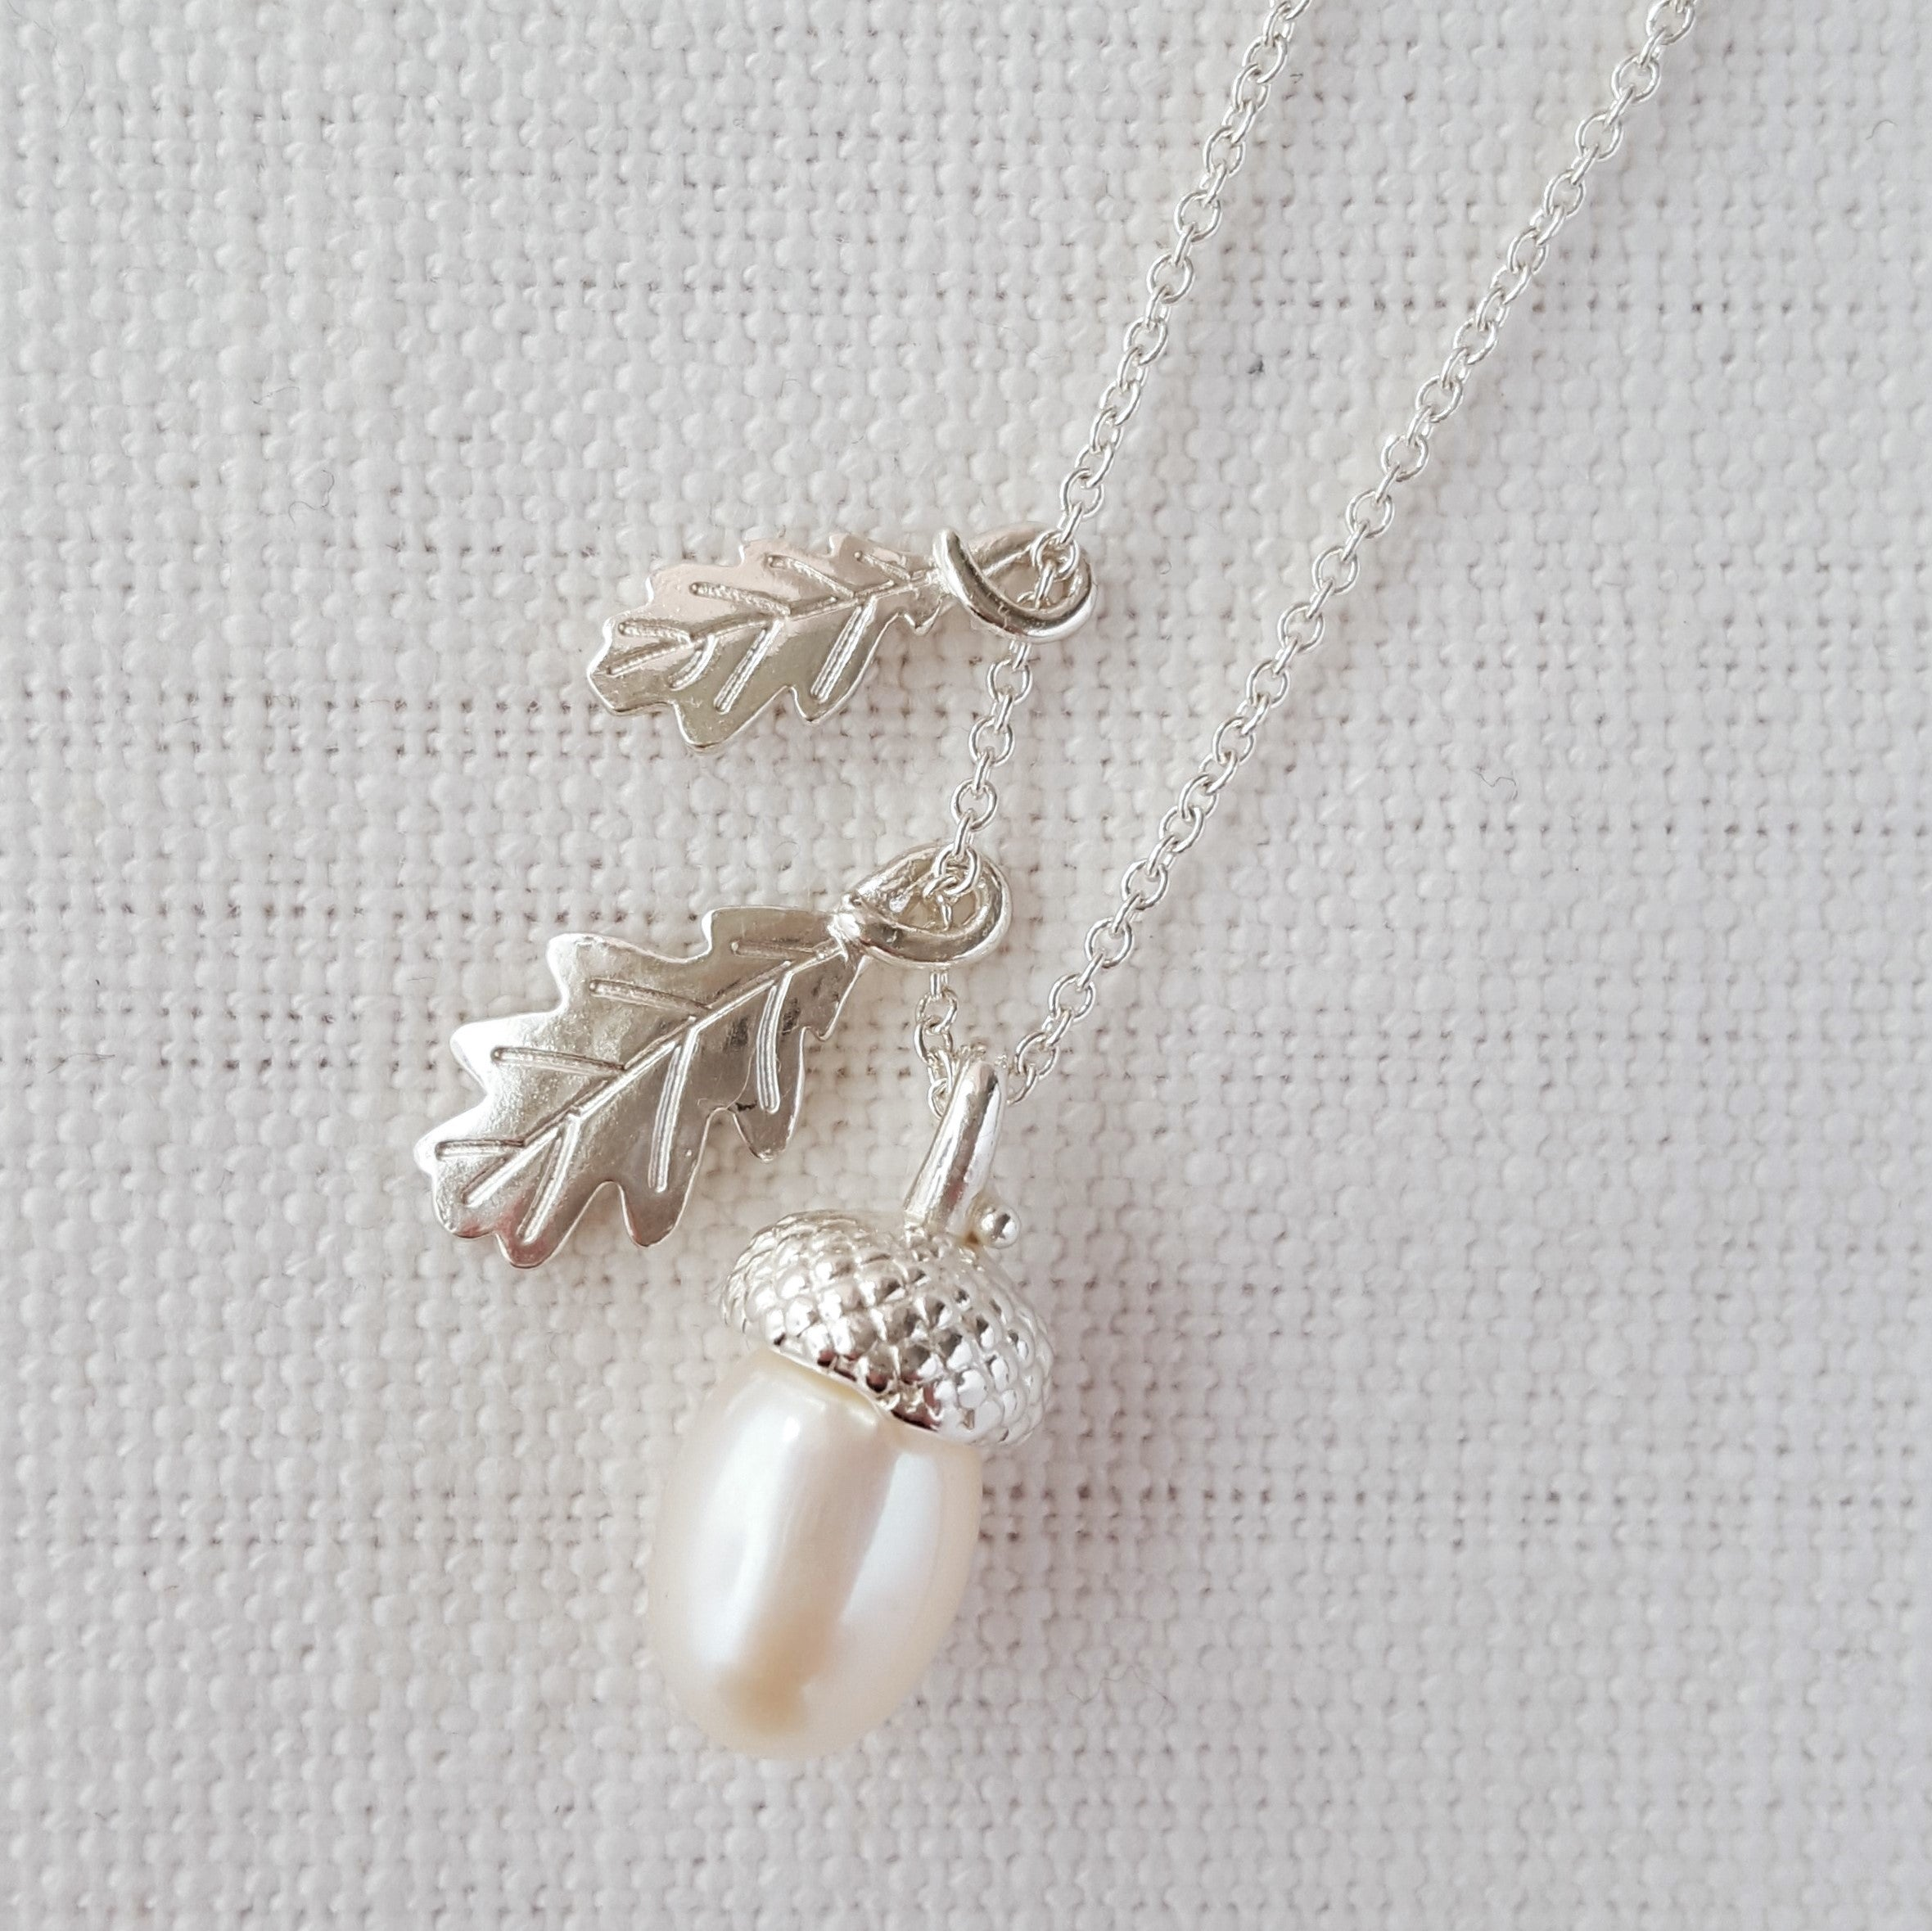 Silver Pearl Acorn With Oak Leaves Necklace Pendant